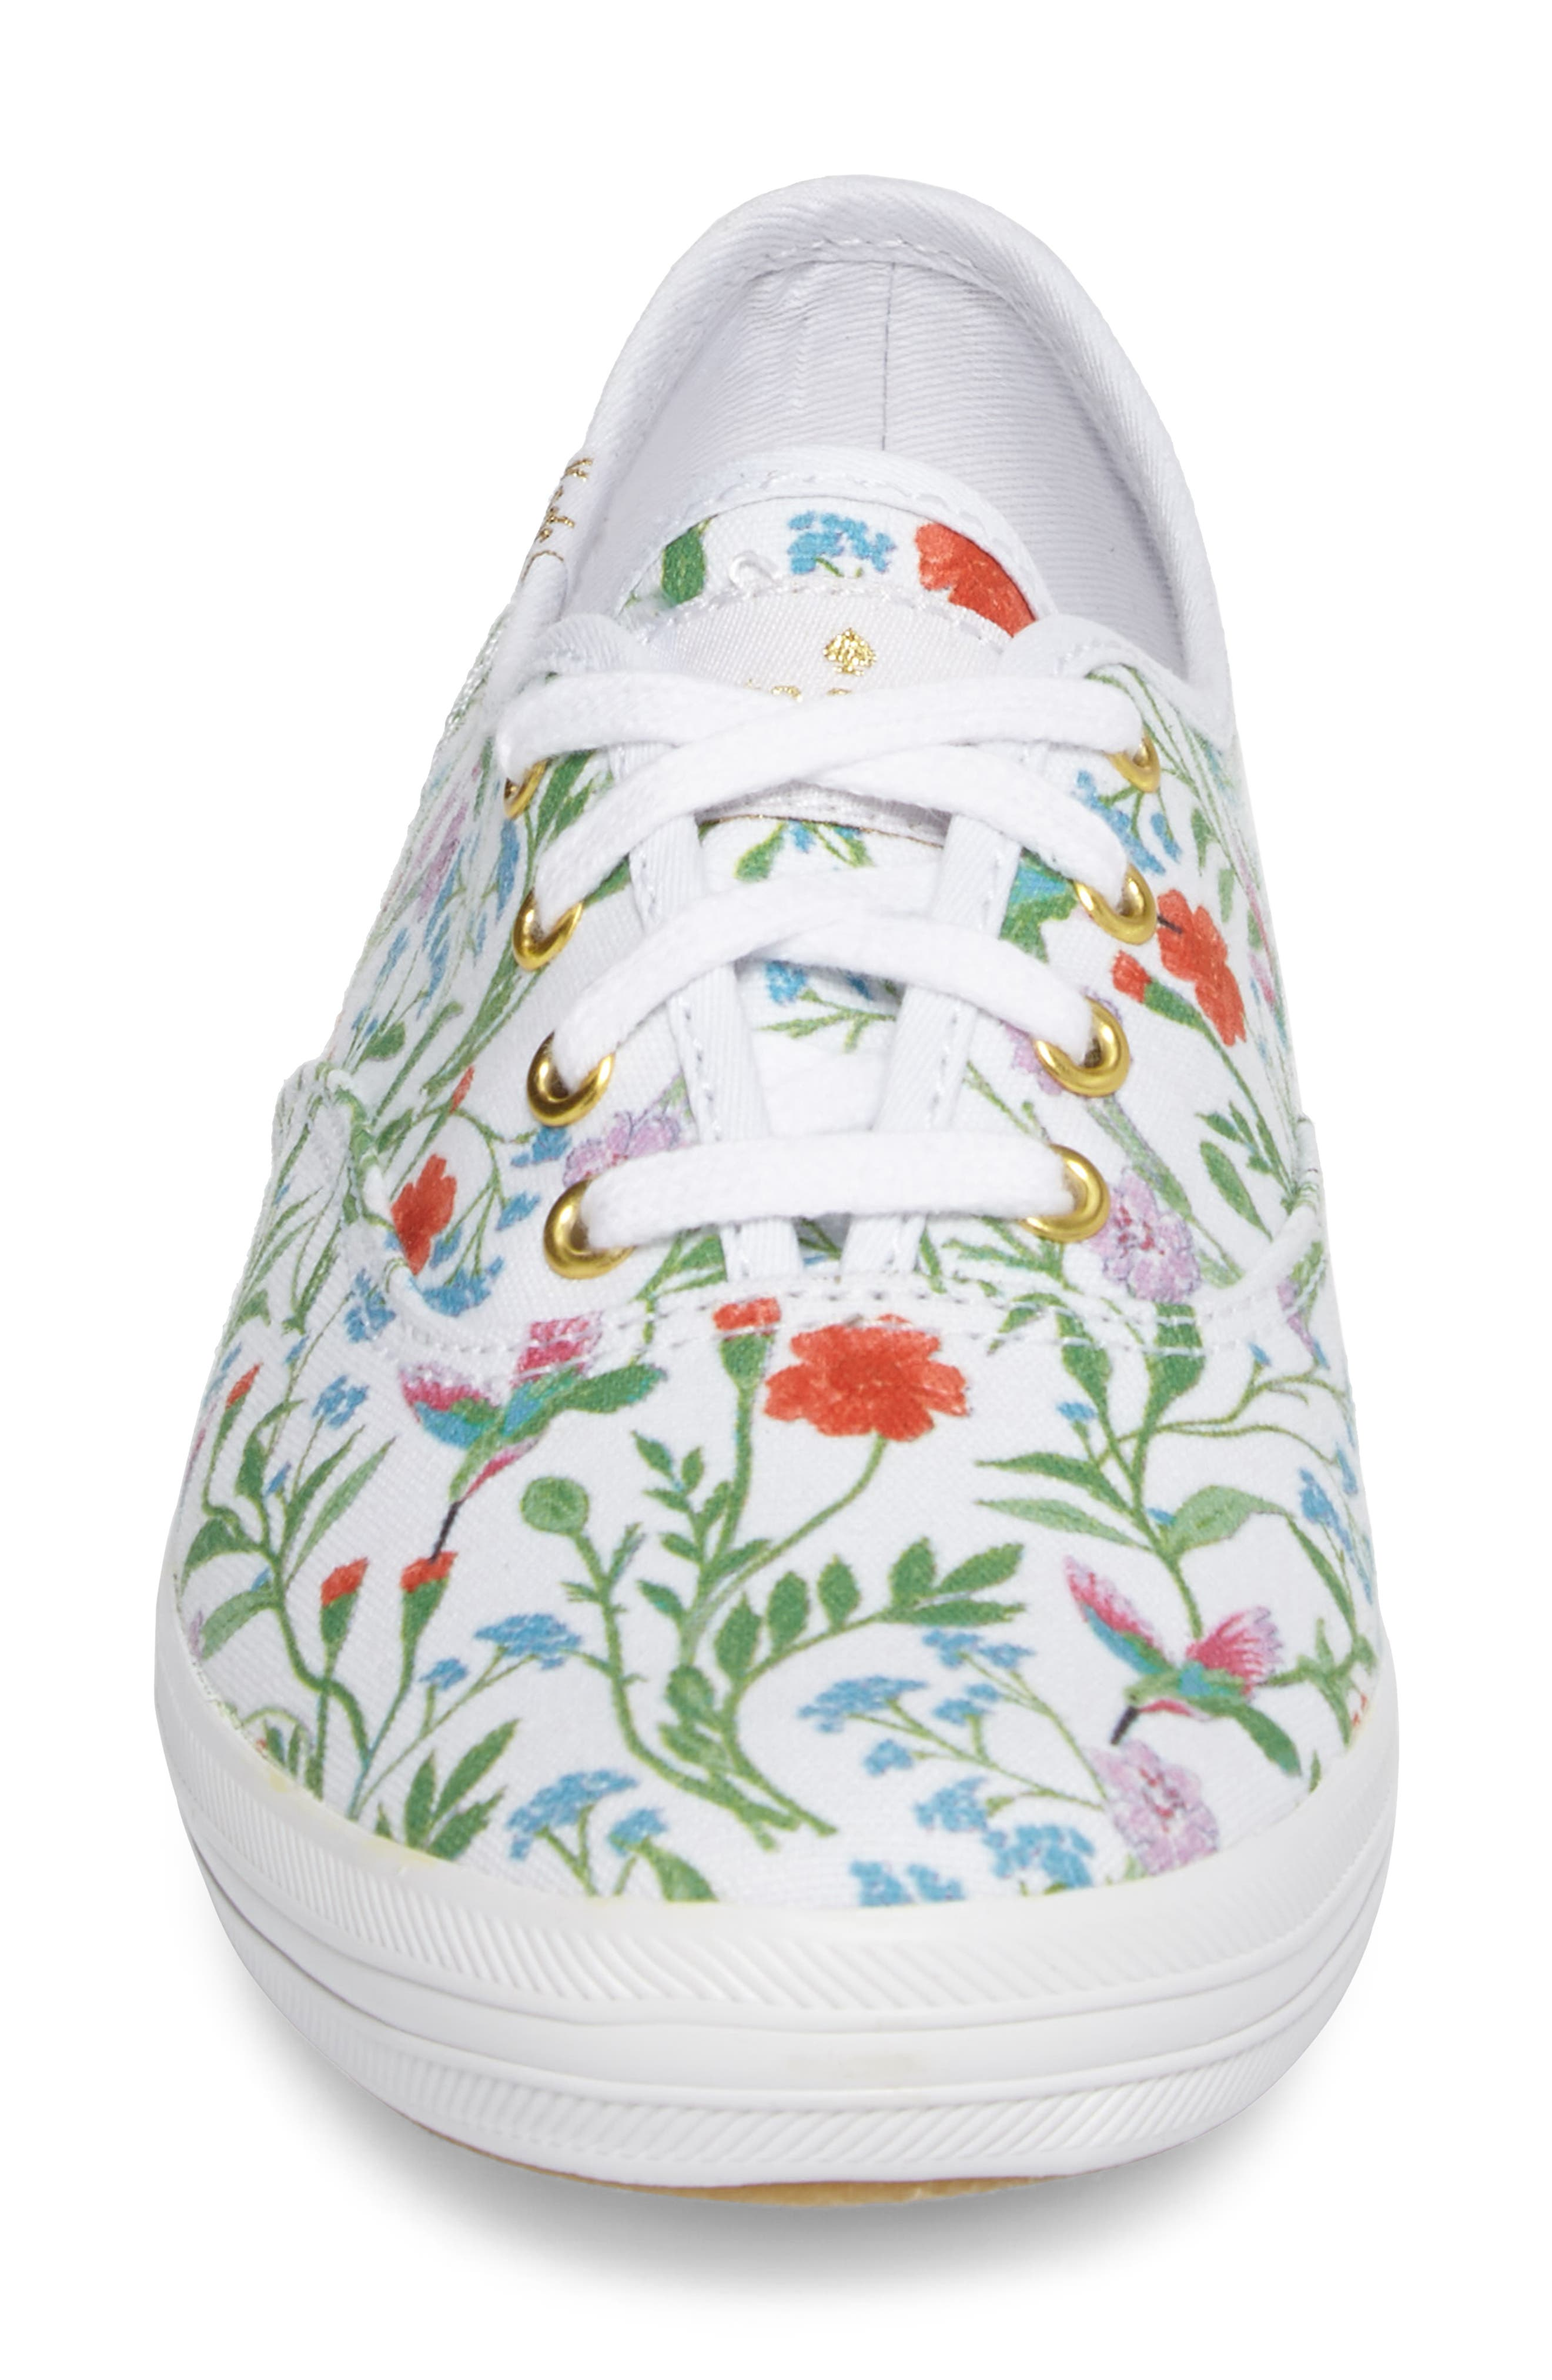 Keds<sup>®</sup> x kate spade new york champion sneaker,                             Alternate thumbnail 15, color,